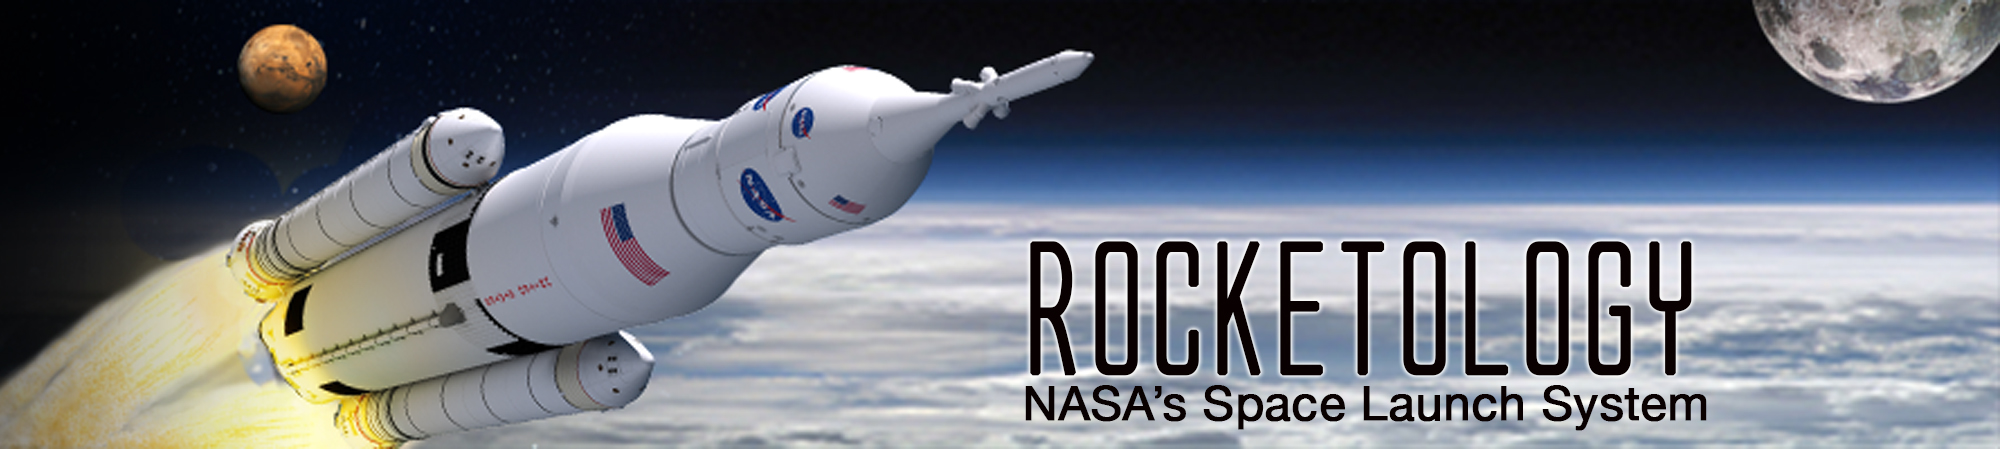 NASA Space Launch System rocket Rocketology NASA photo posted on SpaceFlight Insider